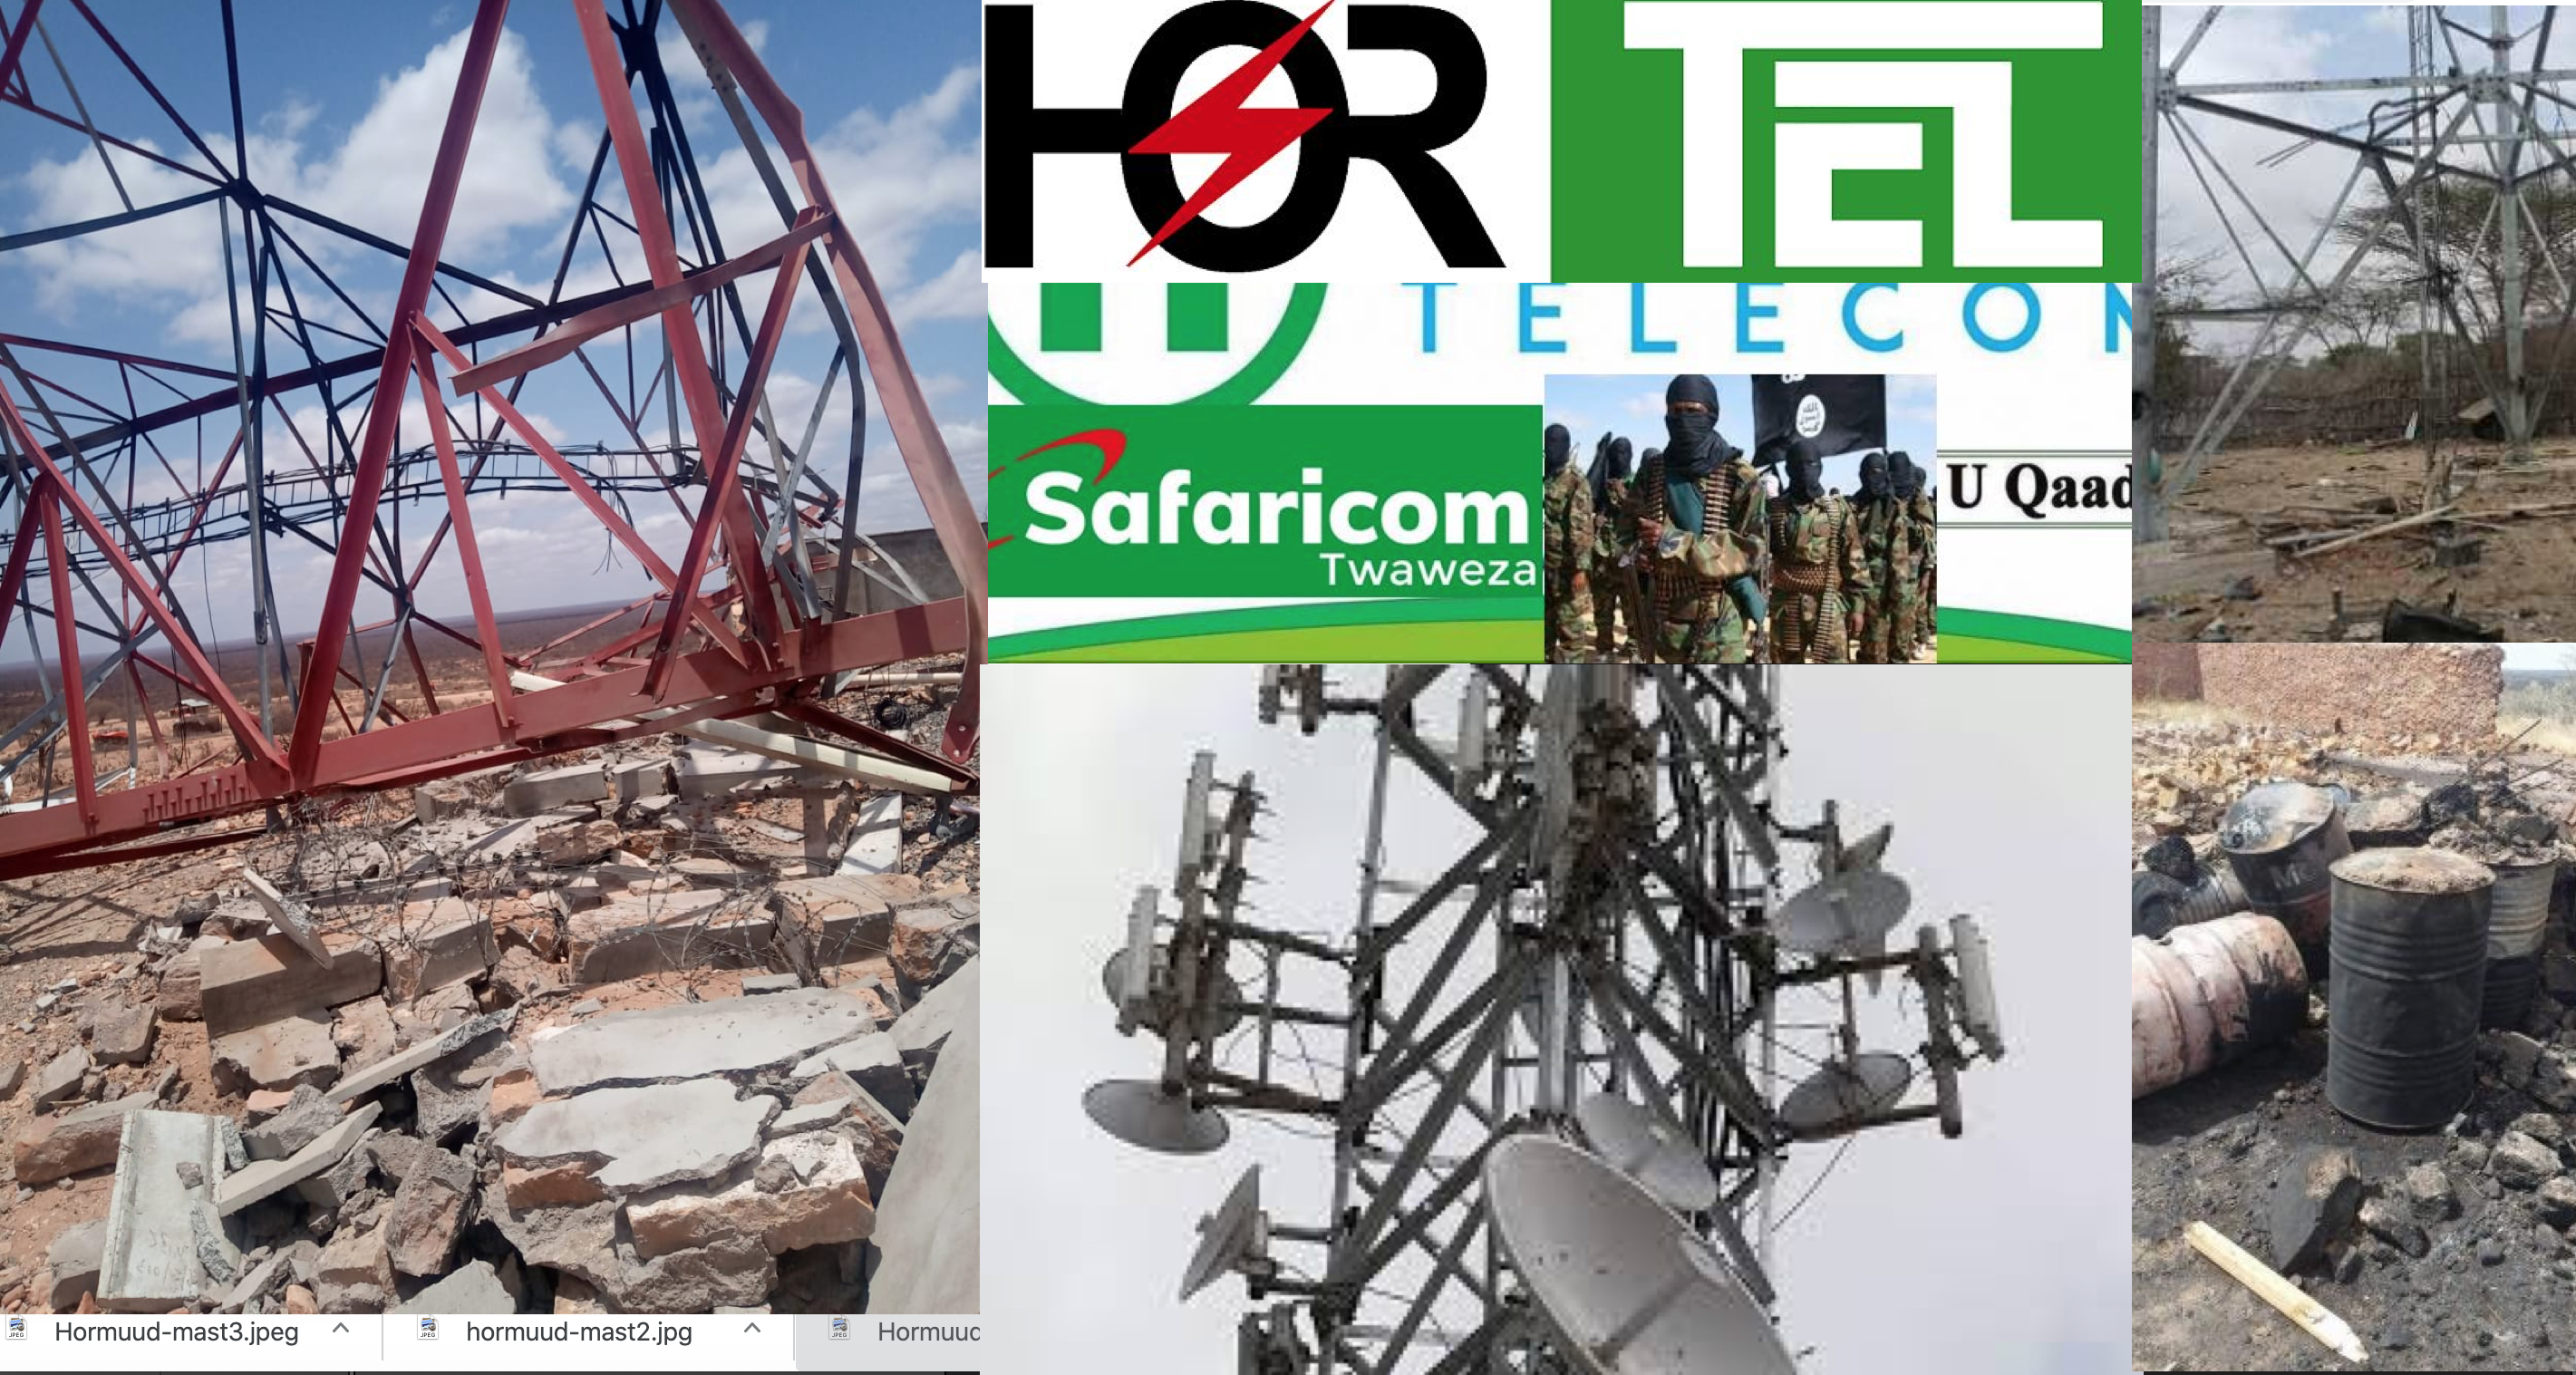 Hormuud telecom and Al-Shabaab's Strategy of Destroying Mobile Communication Masts